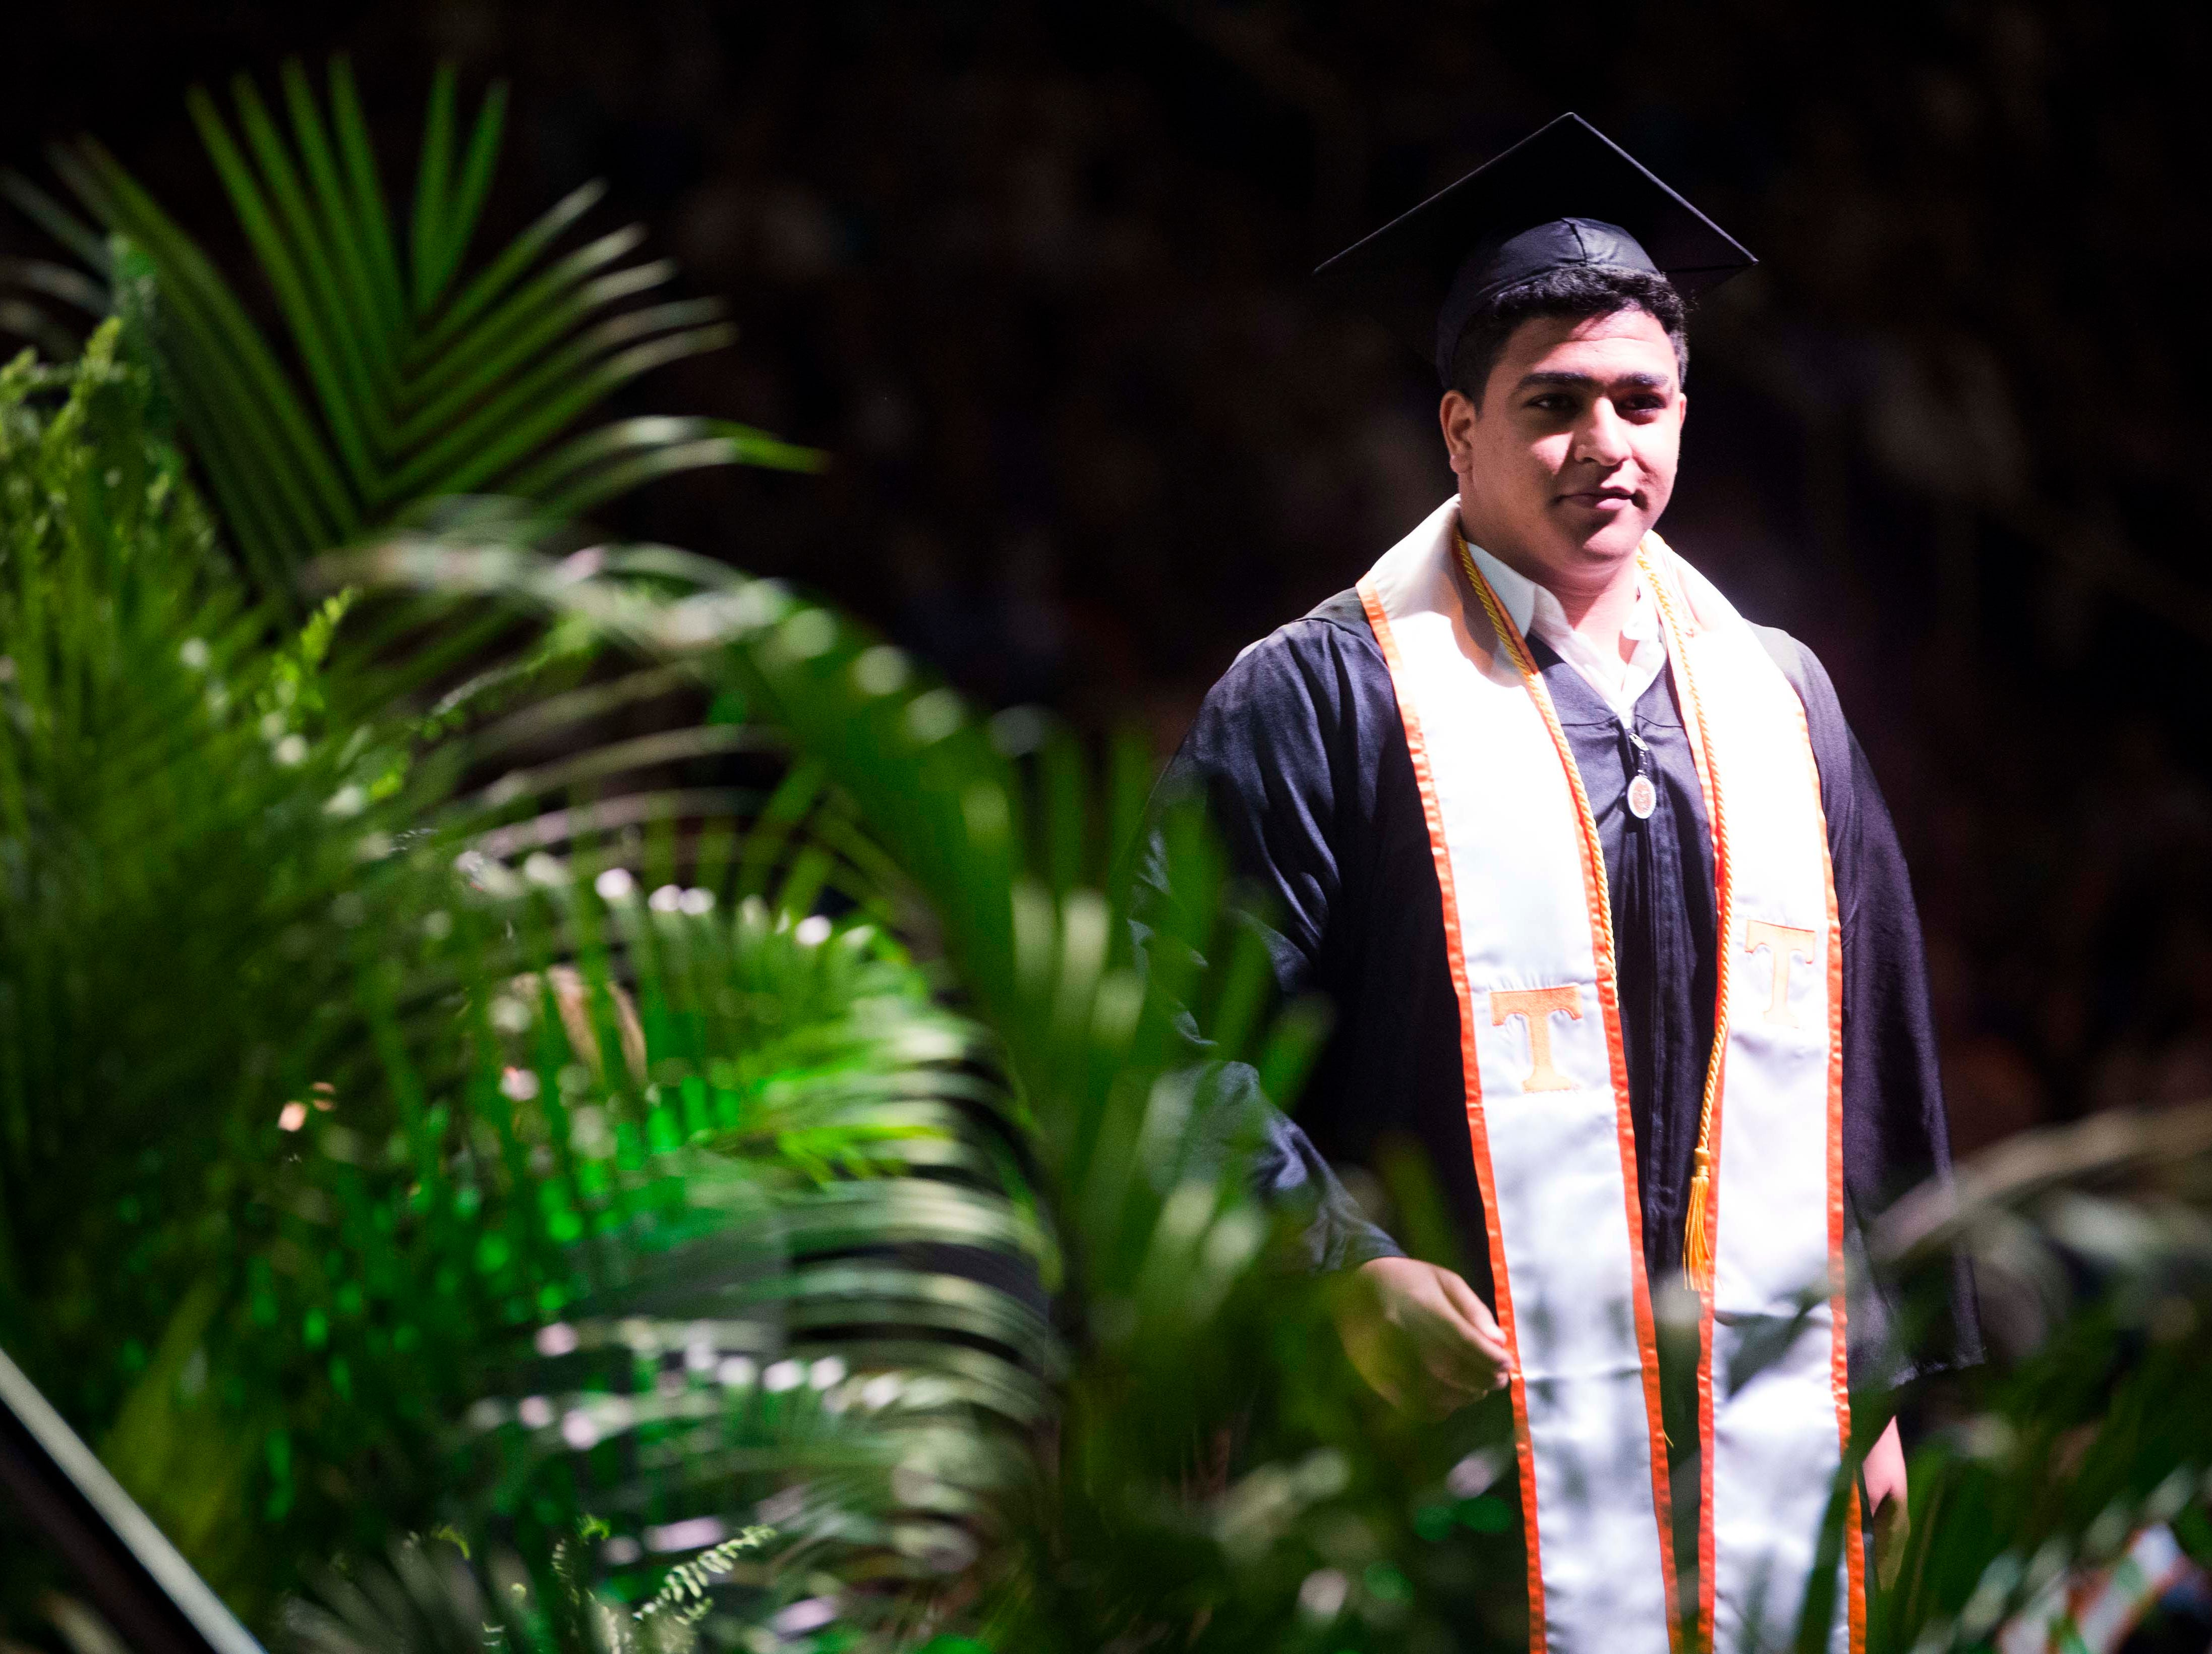 A student walks across the stage during University of Tennessee's College of Arts and Sciences commencement in Thompson-Boling arena in Knoxville, Saturday, May 11, 2019.